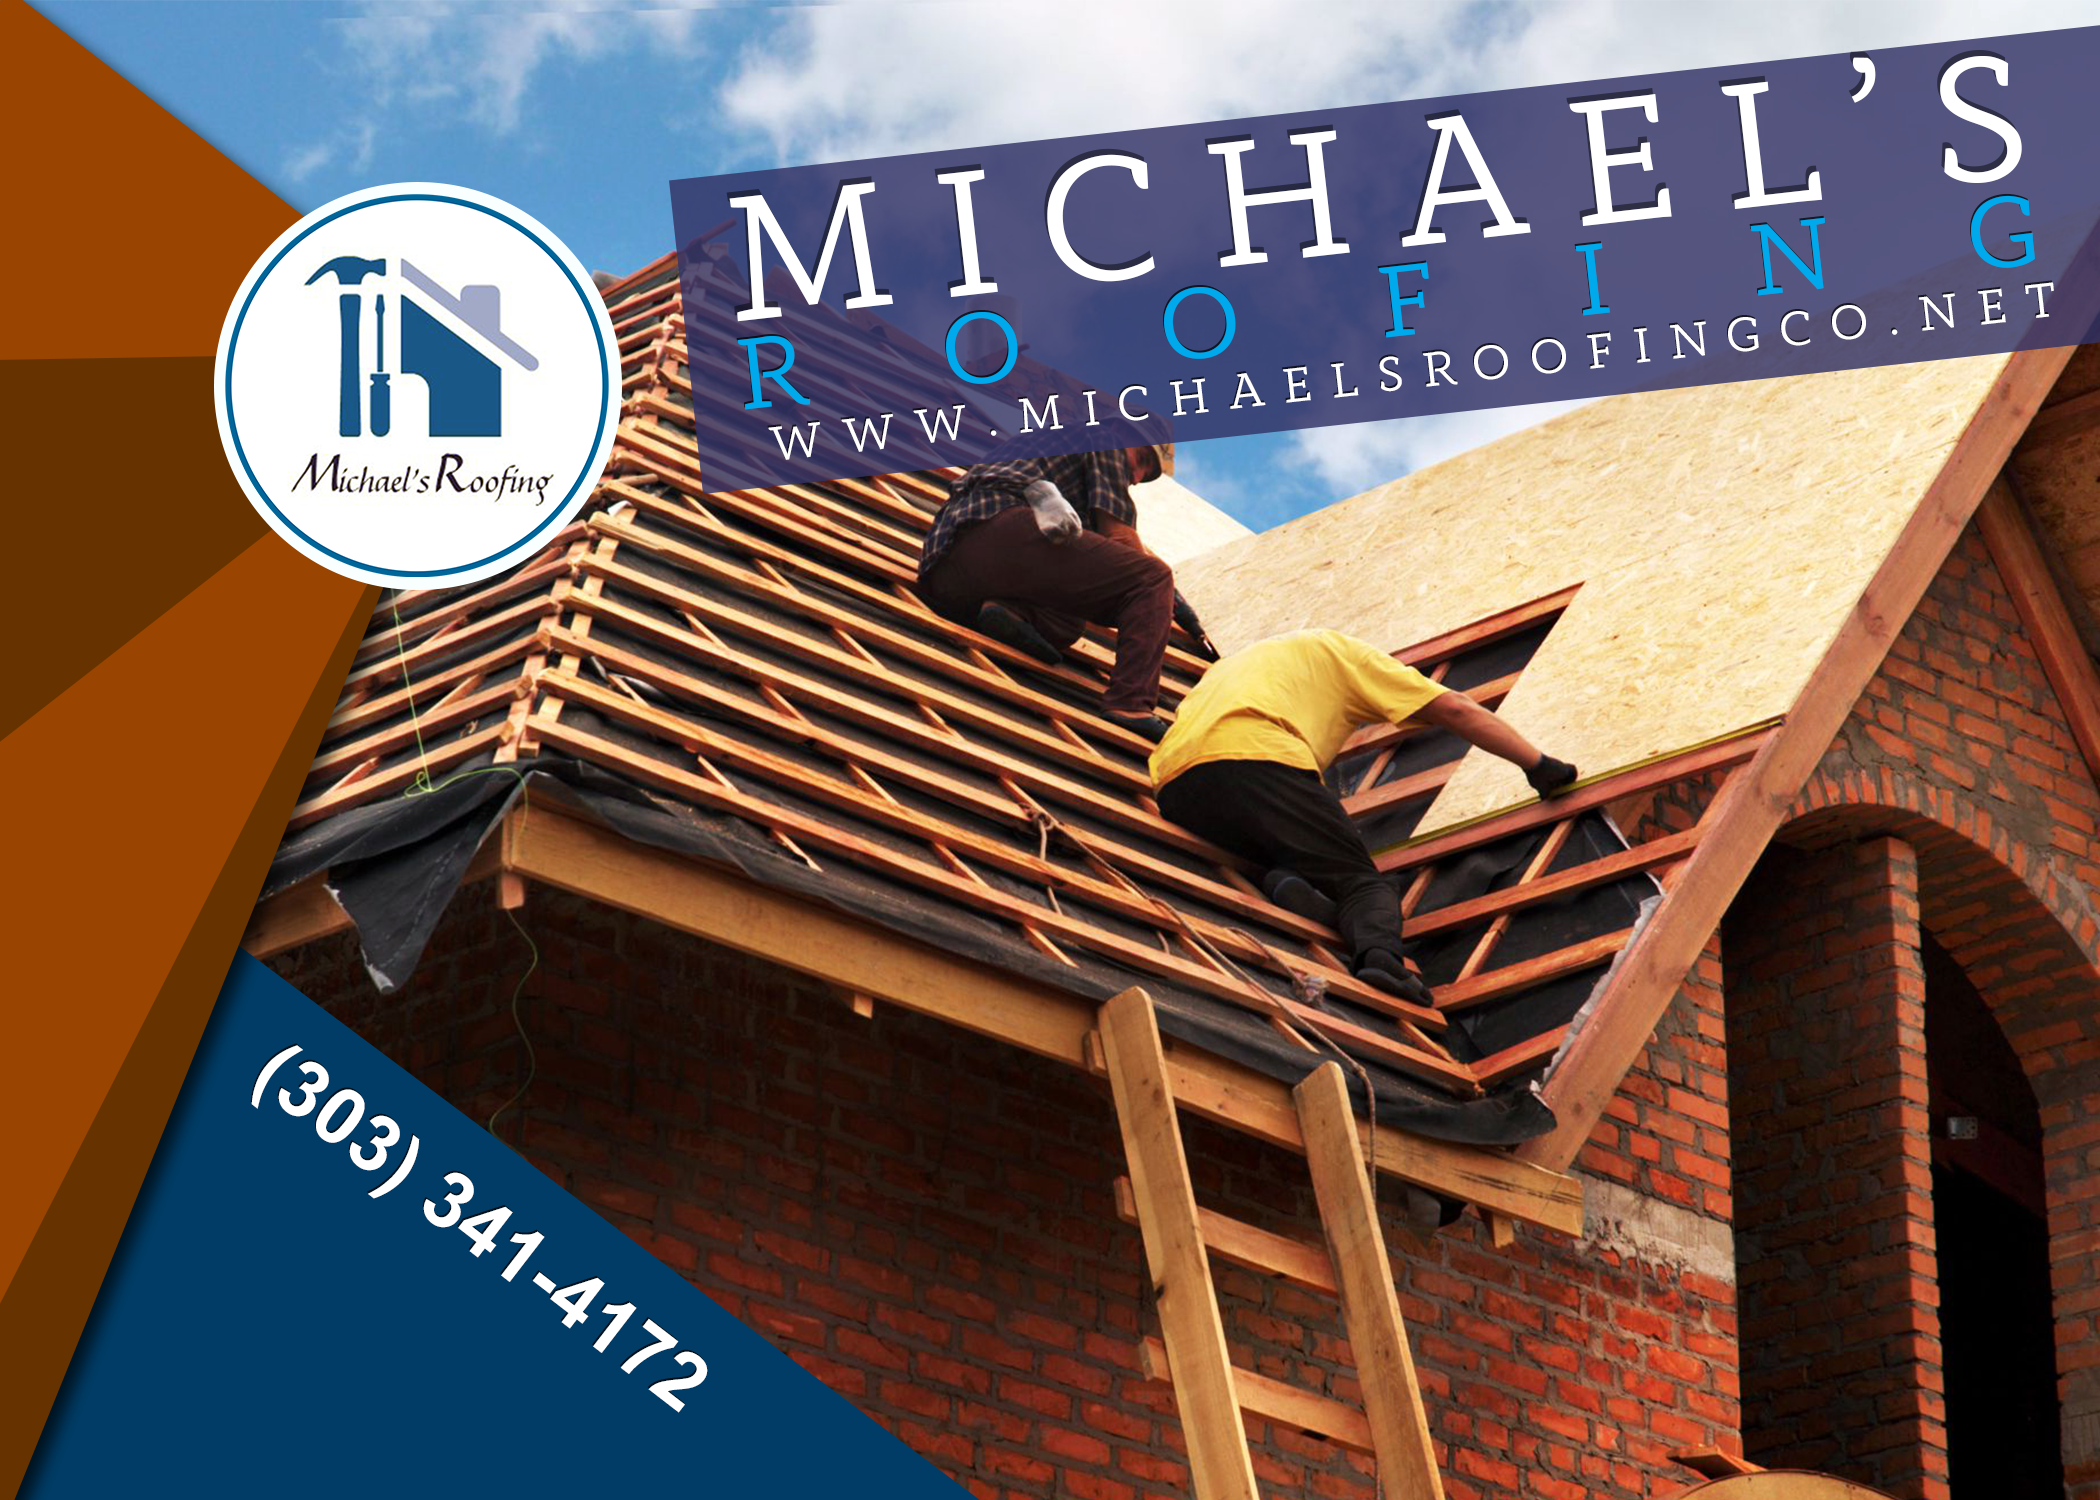 Roof Installation In 2020 Roofing Roofing Services Roof Installation